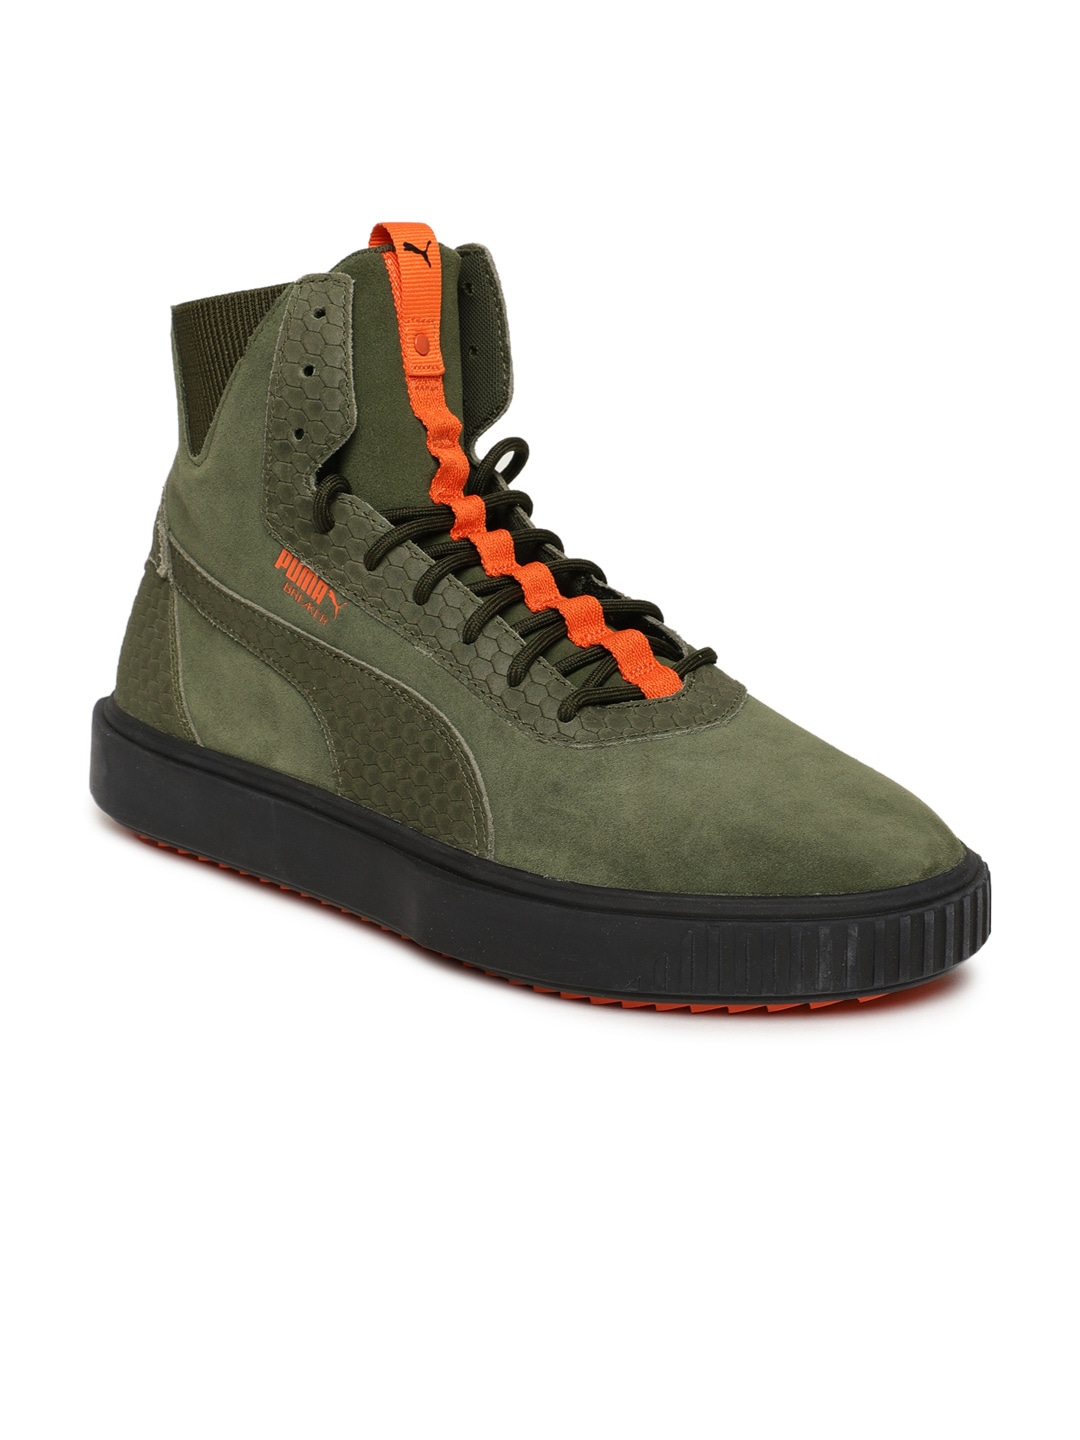 India In Buy Online Shoes Top Puma High wn0Nm8